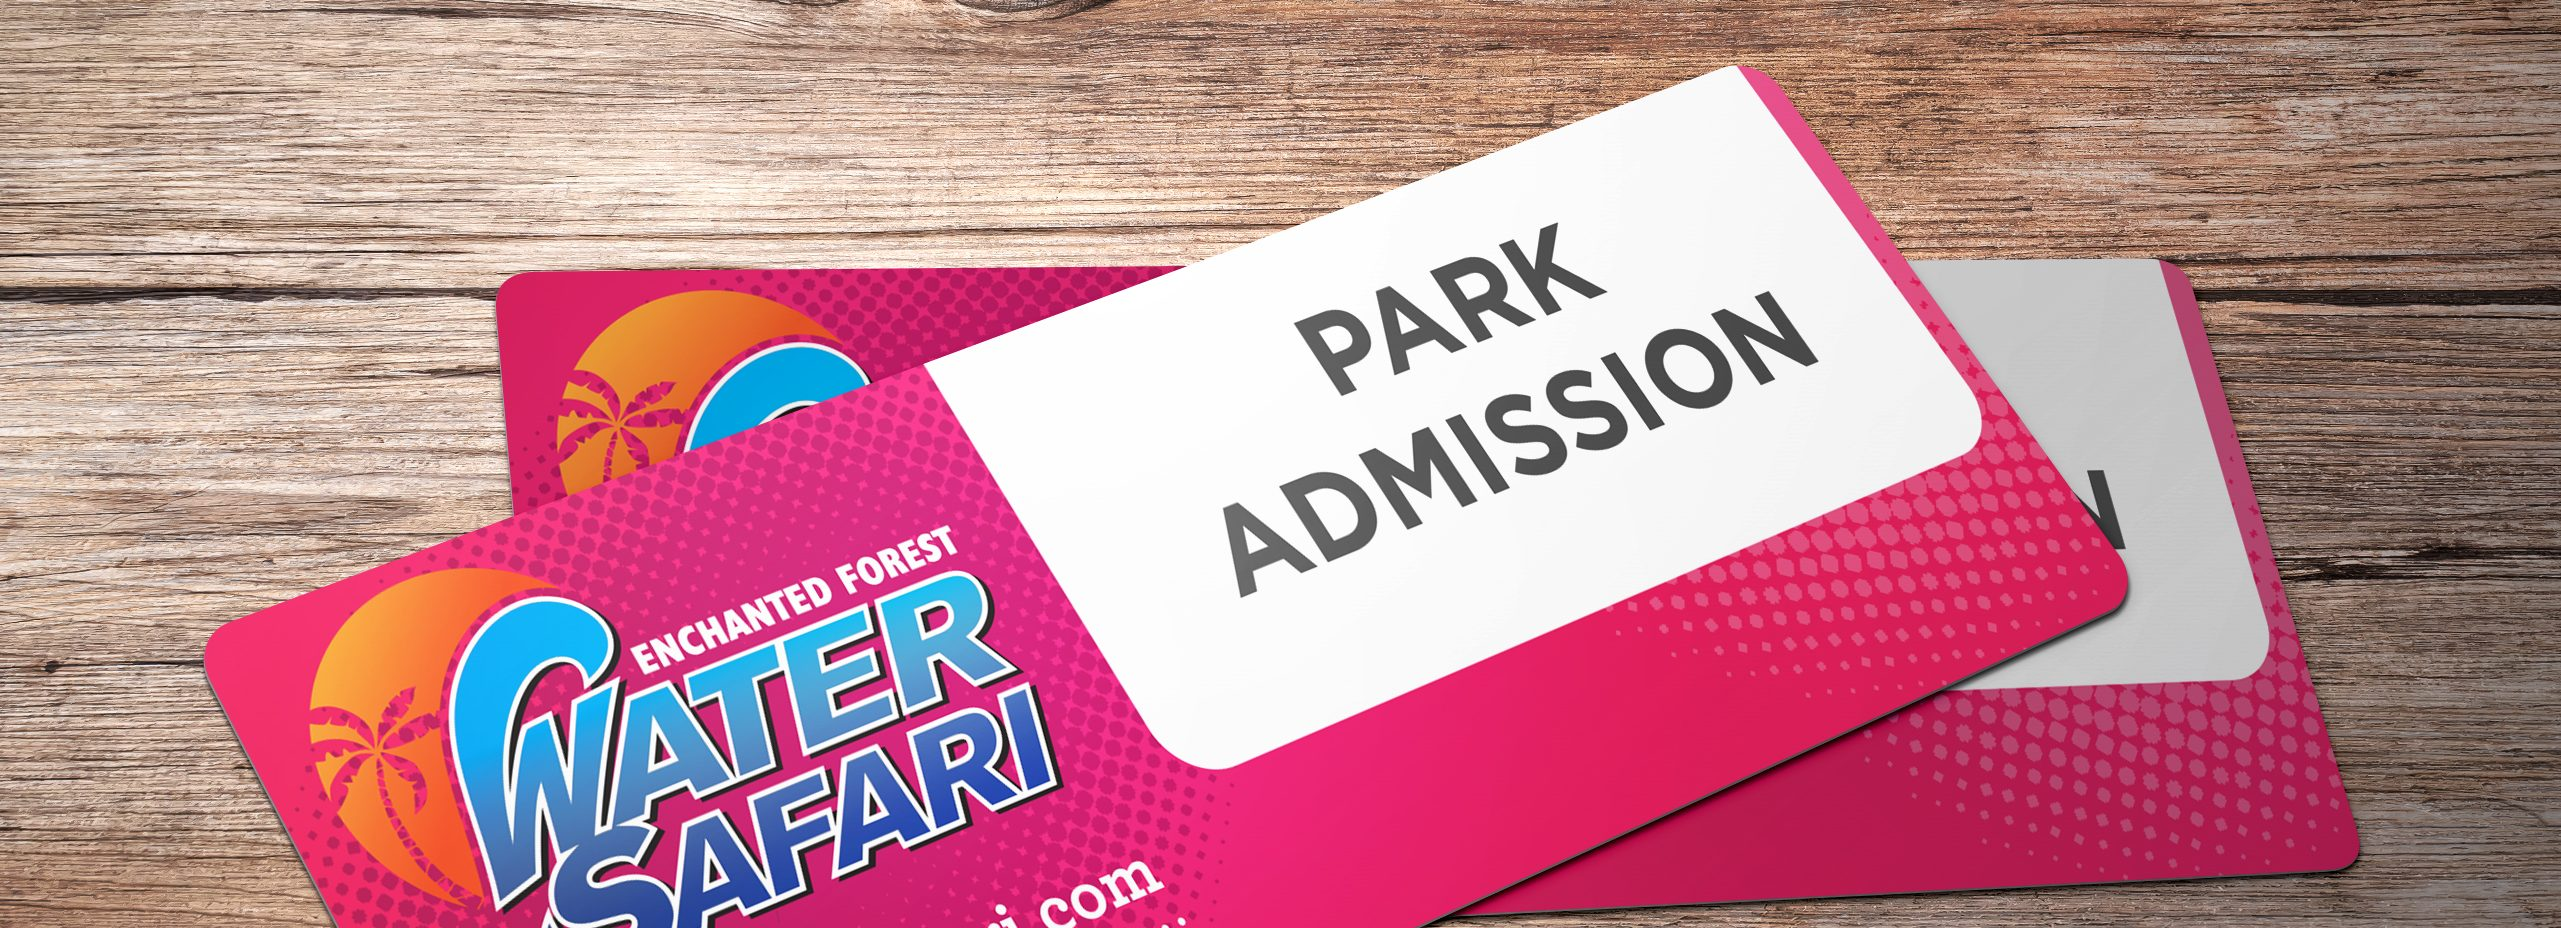 Tickets ready for park admission.